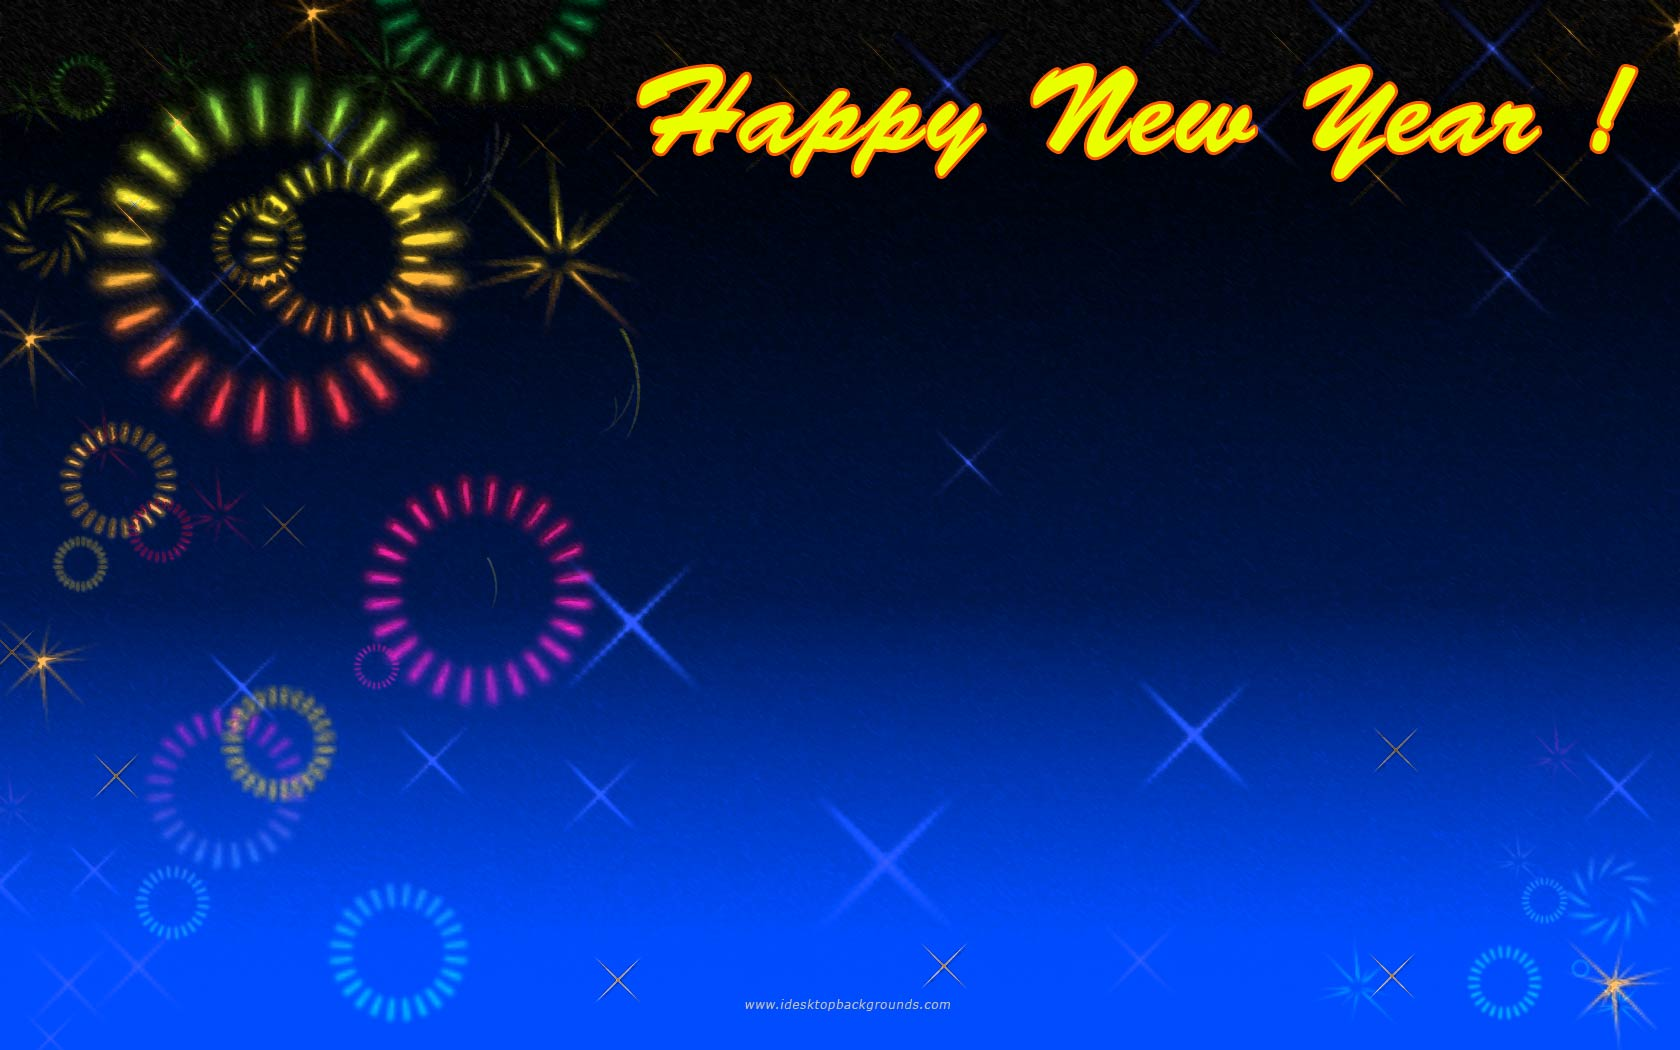 Free download new year hindi new year hindu 2019hindihappy